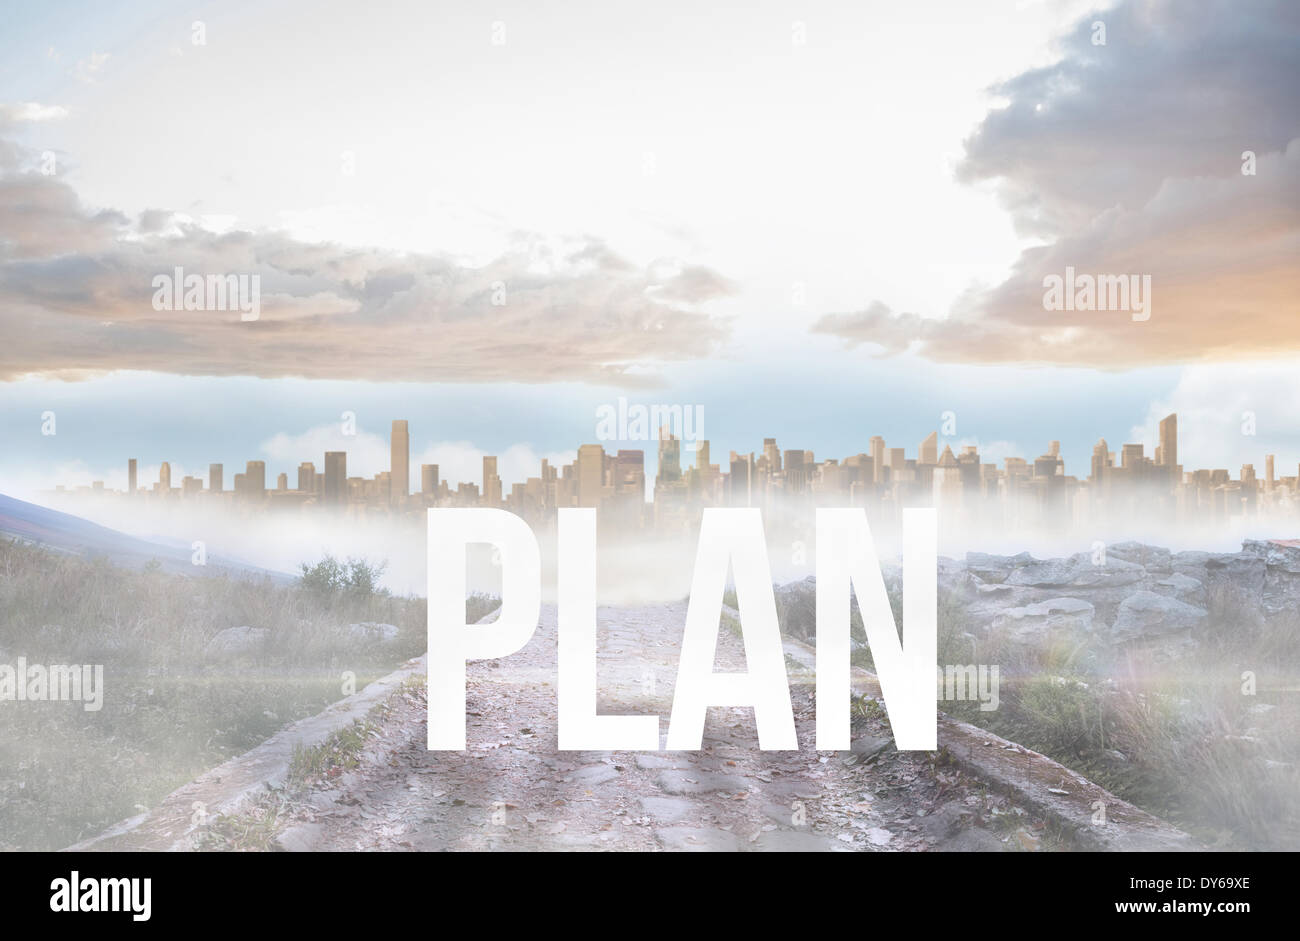 Plan against rocky path leading to large urban sprawl - Stock Image